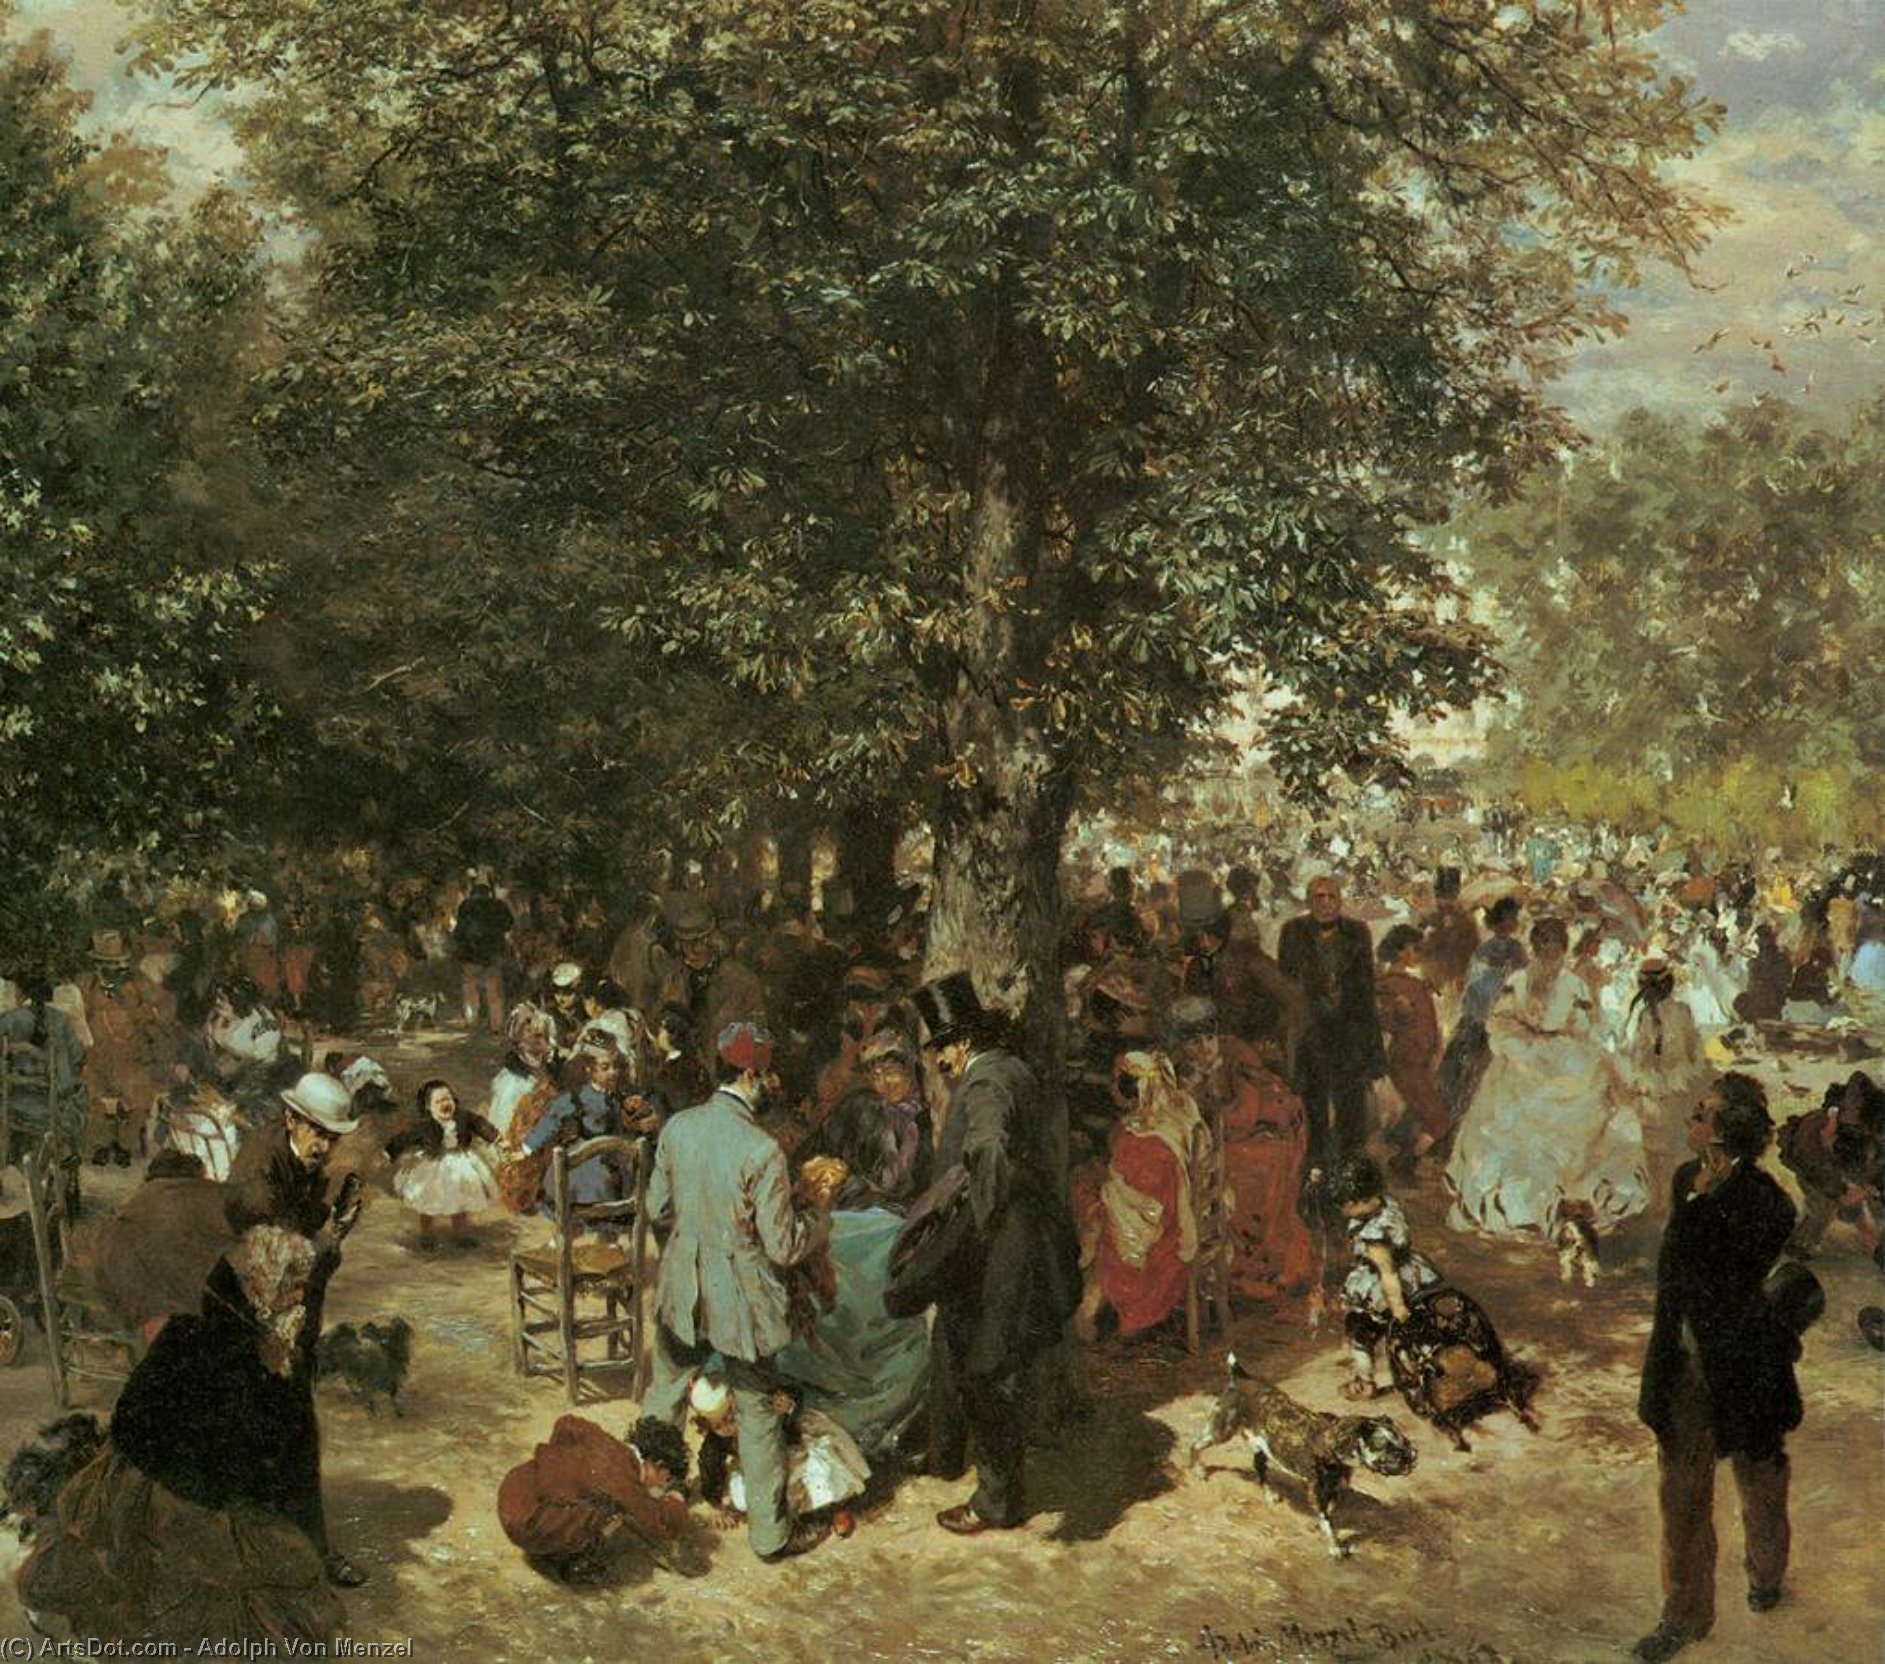 Afternoon at the Tuileries Garden, Oil On Canvas by Adolph Menzel (1815-1905, Poland)